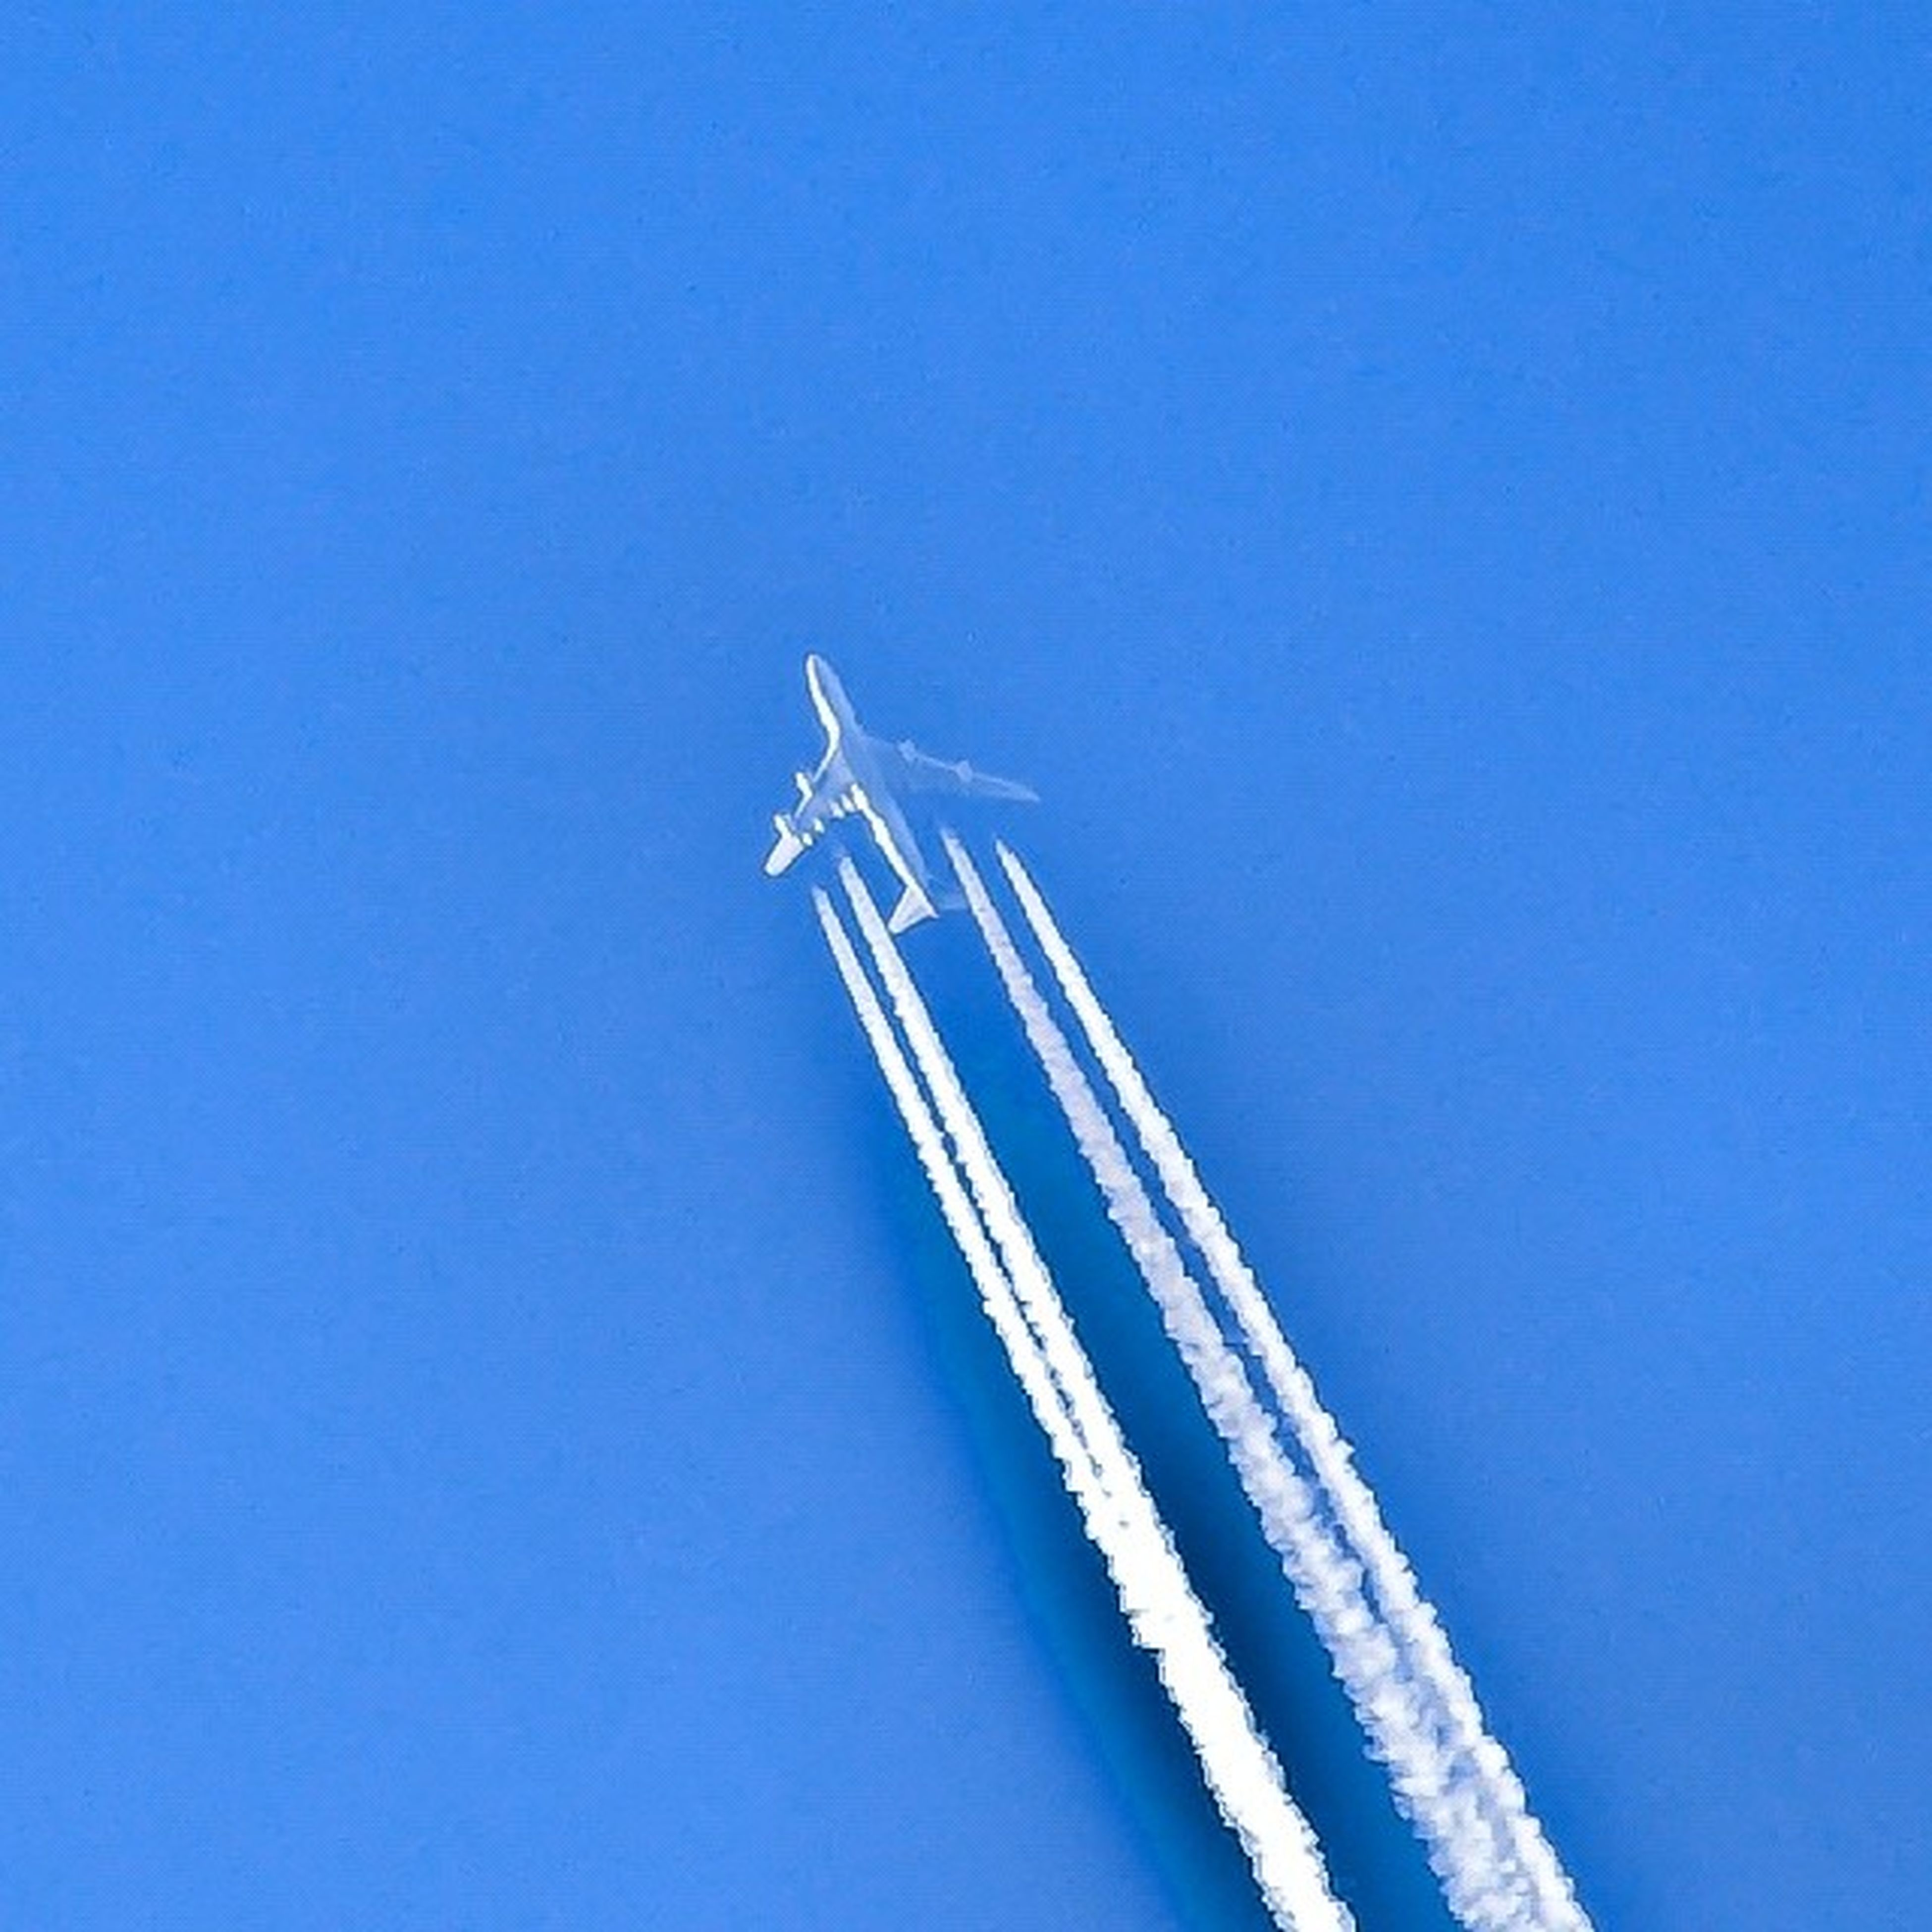 blue, clear sky, copy space, low angle view, transportation, white color, travel, vapor trail, snow, cold temperature, winter, famous place, outdoors, day, international landmark, white, no people, tourism, travel destinations, speed